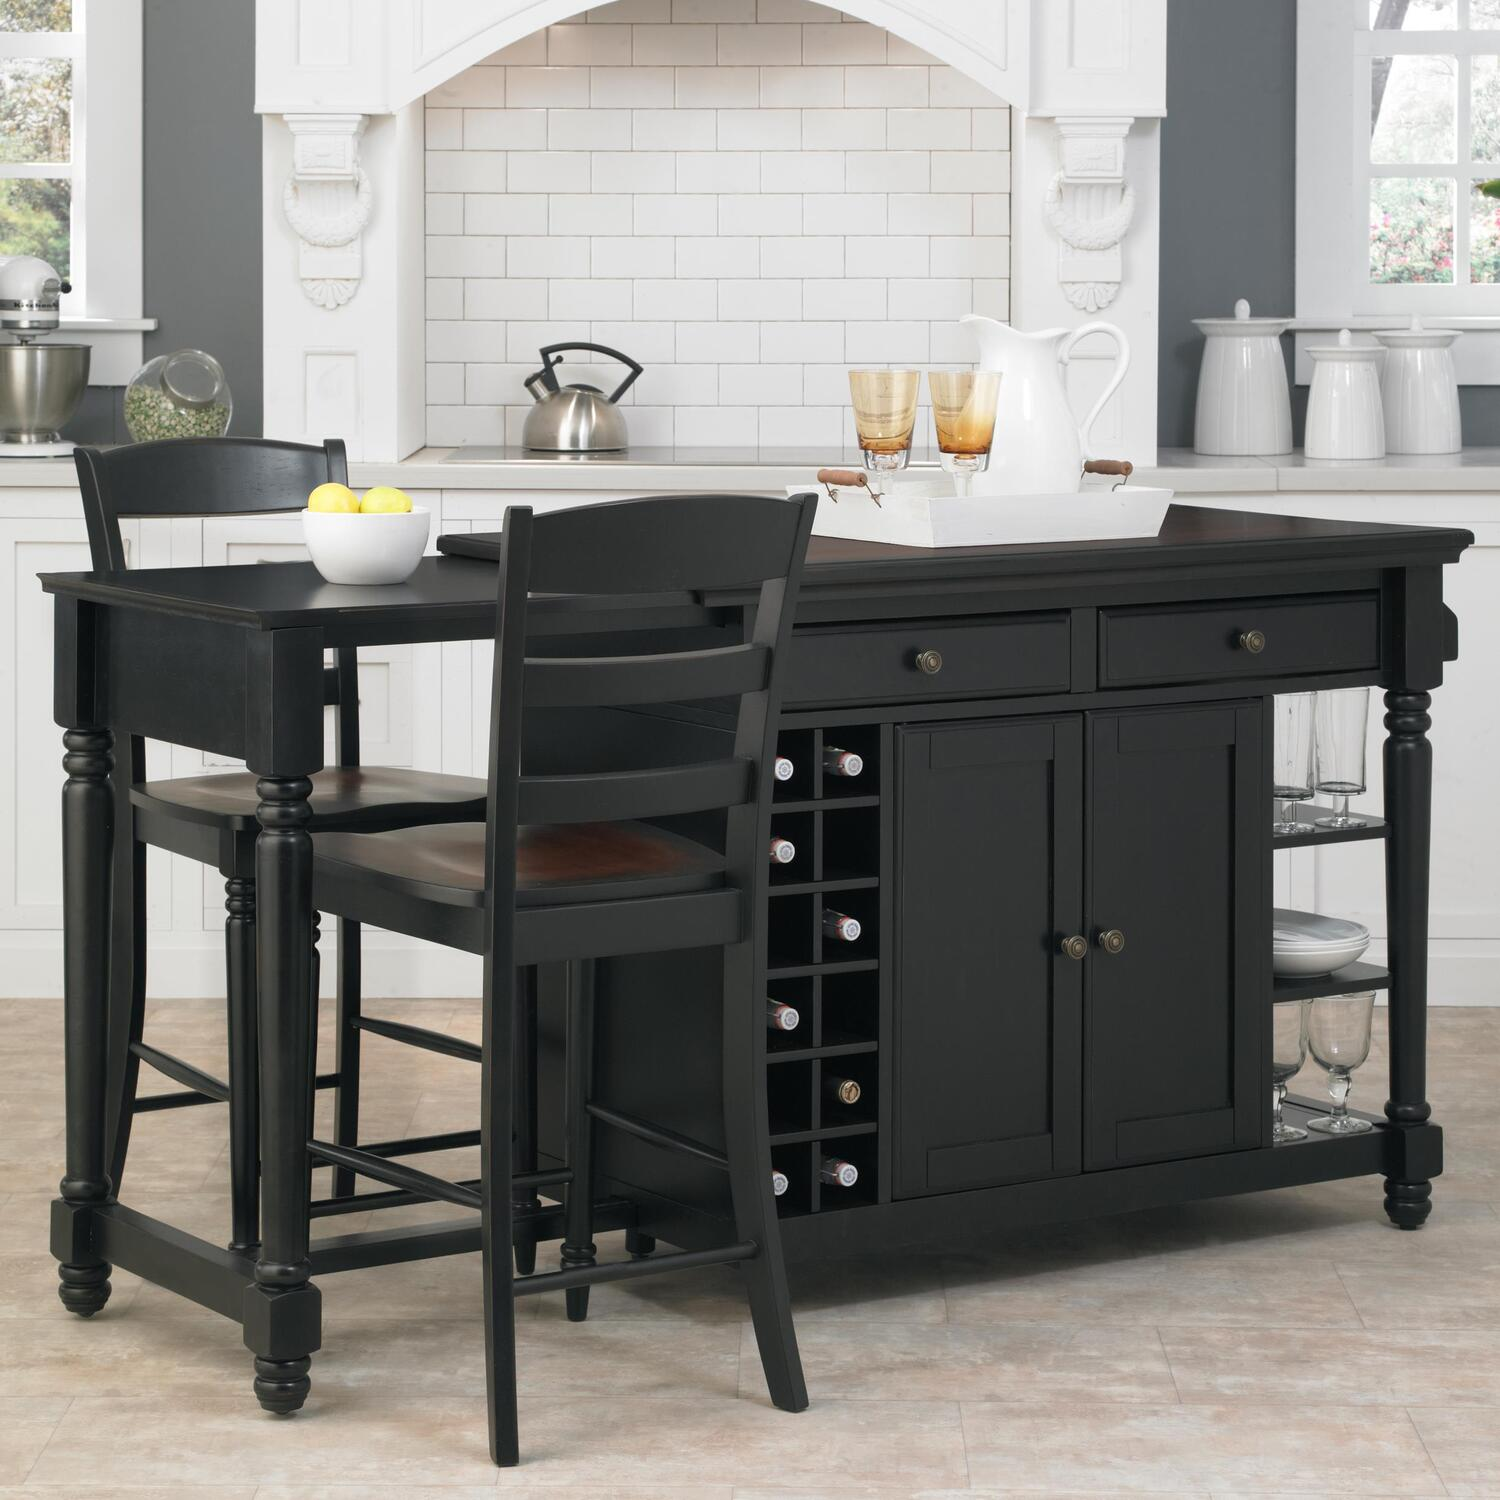 wine themed kitchen accessories best remodels furniture, home goods, appliances, athletic gear, fitness ...